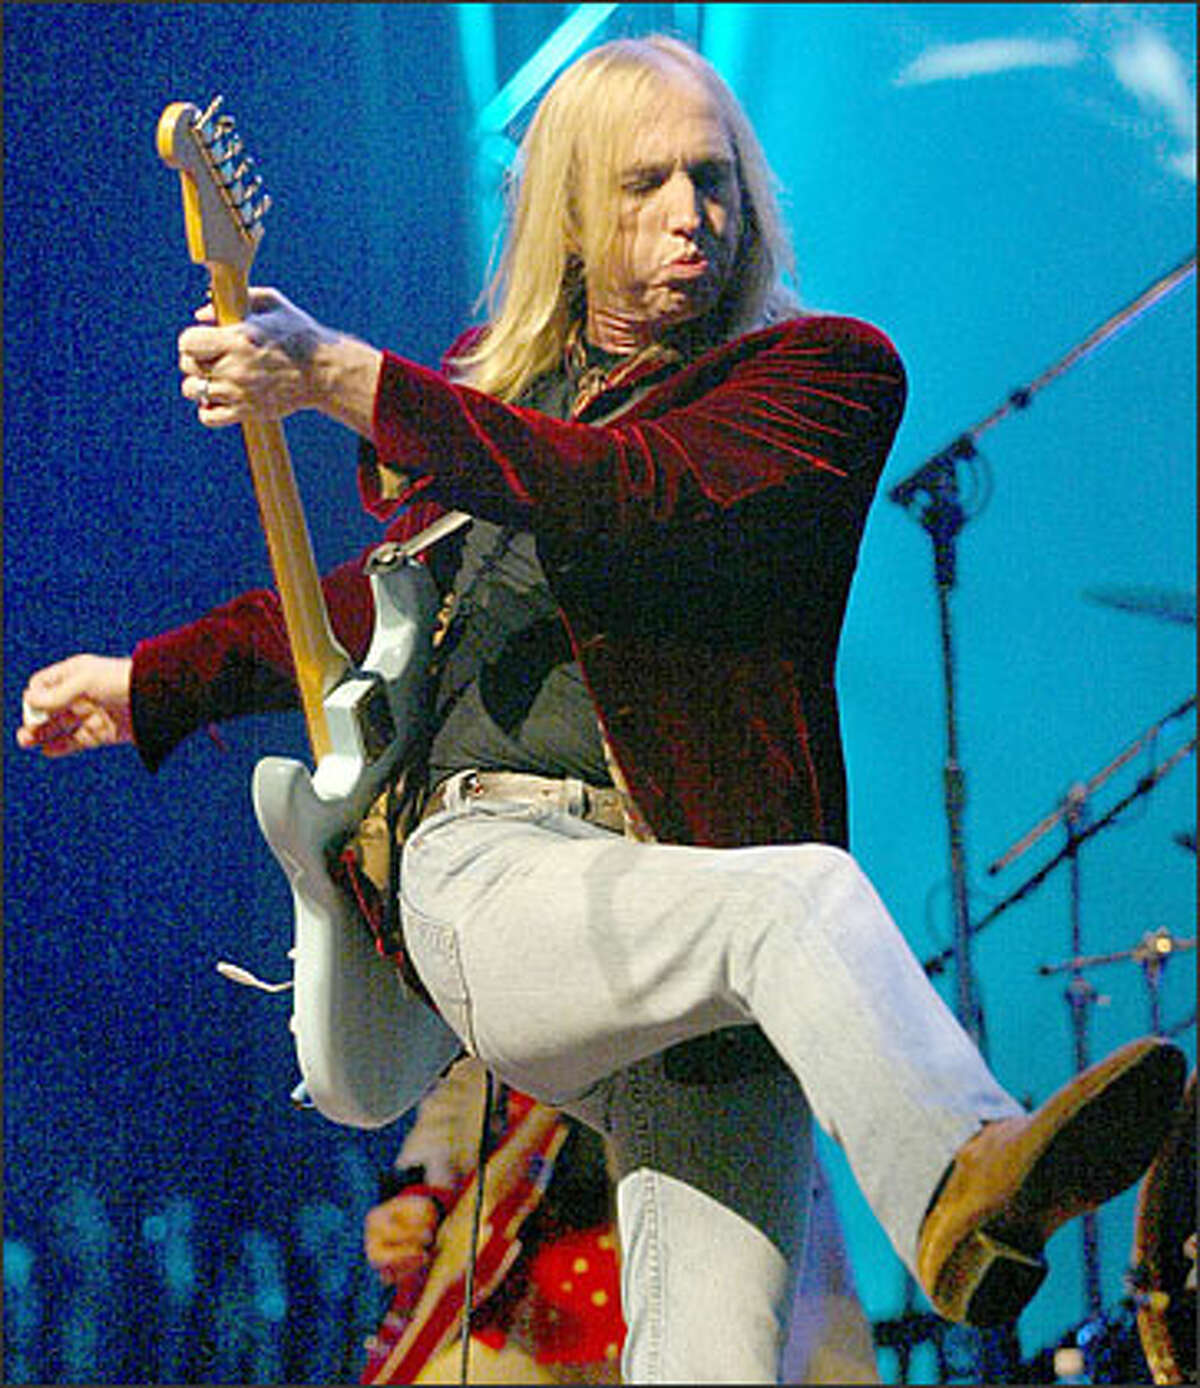 """Tom Petty and the Heartbreakers perform at the Tacoma Dome Saturday night as part of the """"Last DJ Tour"""" concert."""